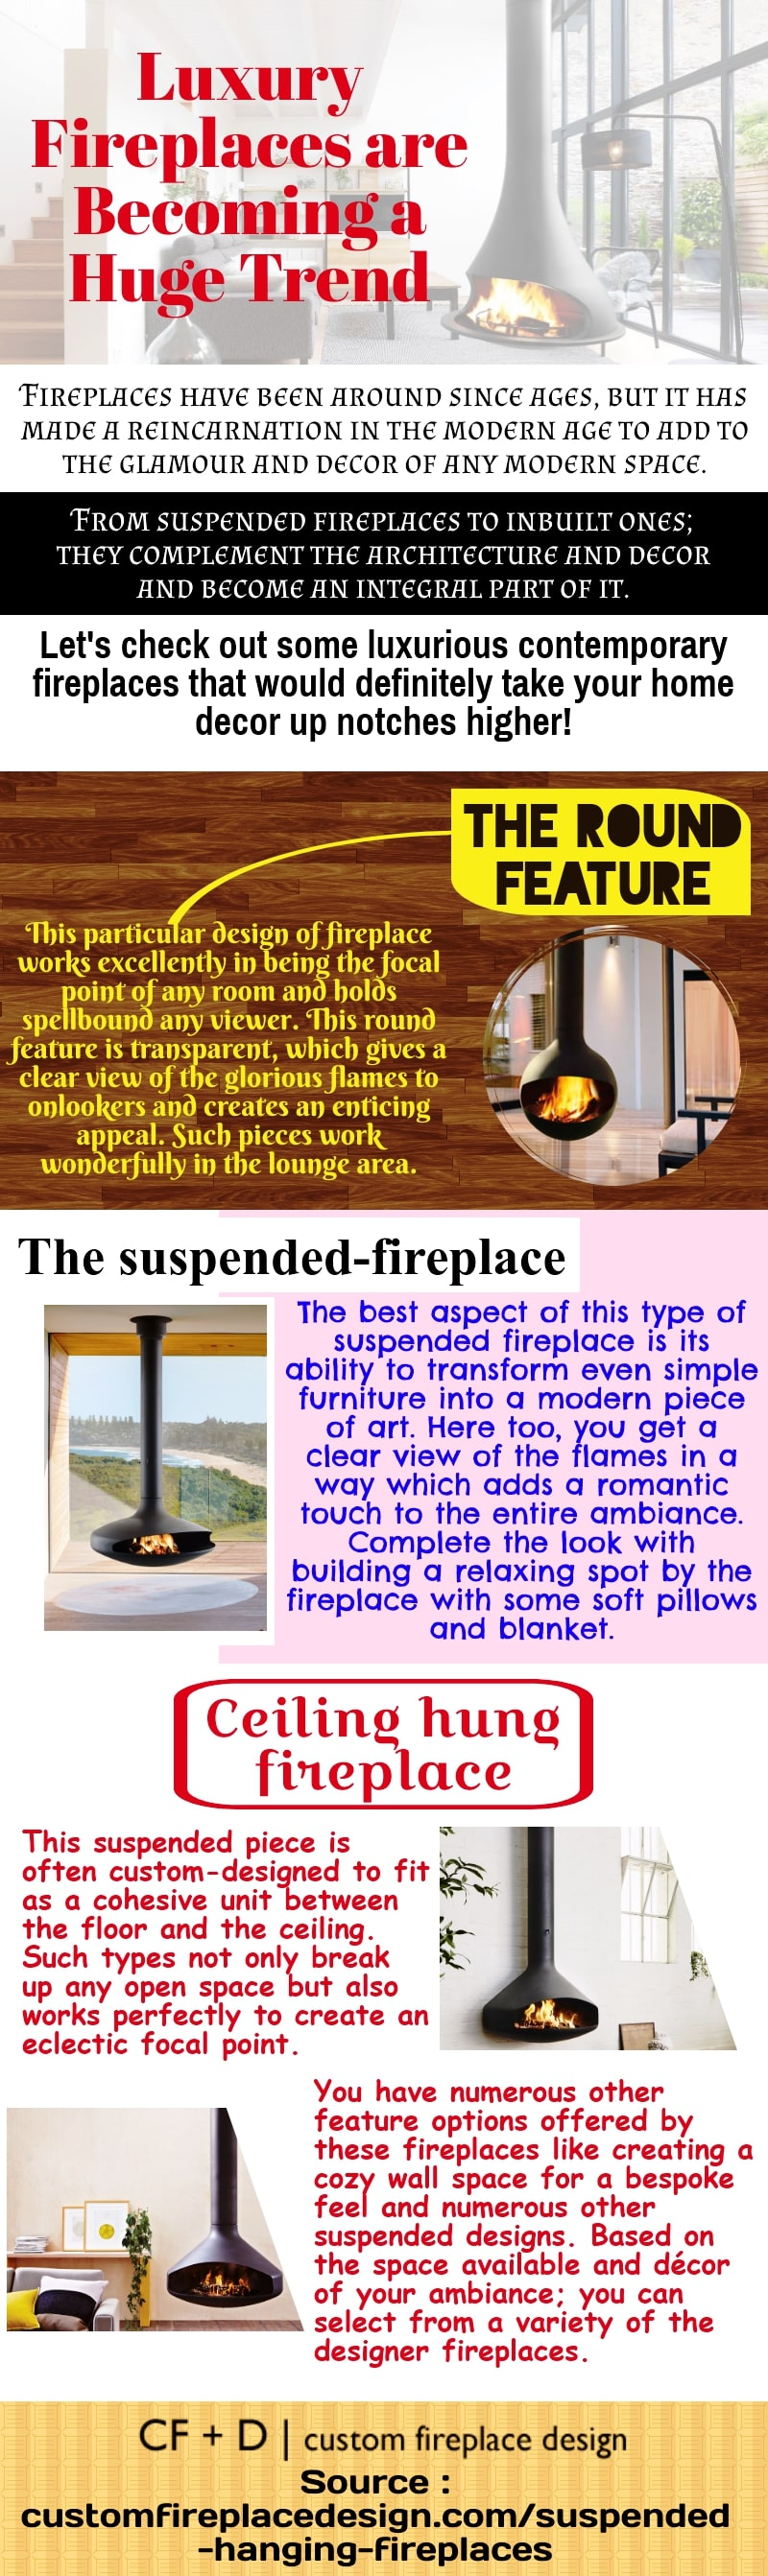 Modern fireplaces can actually take the decor of the room levels higher